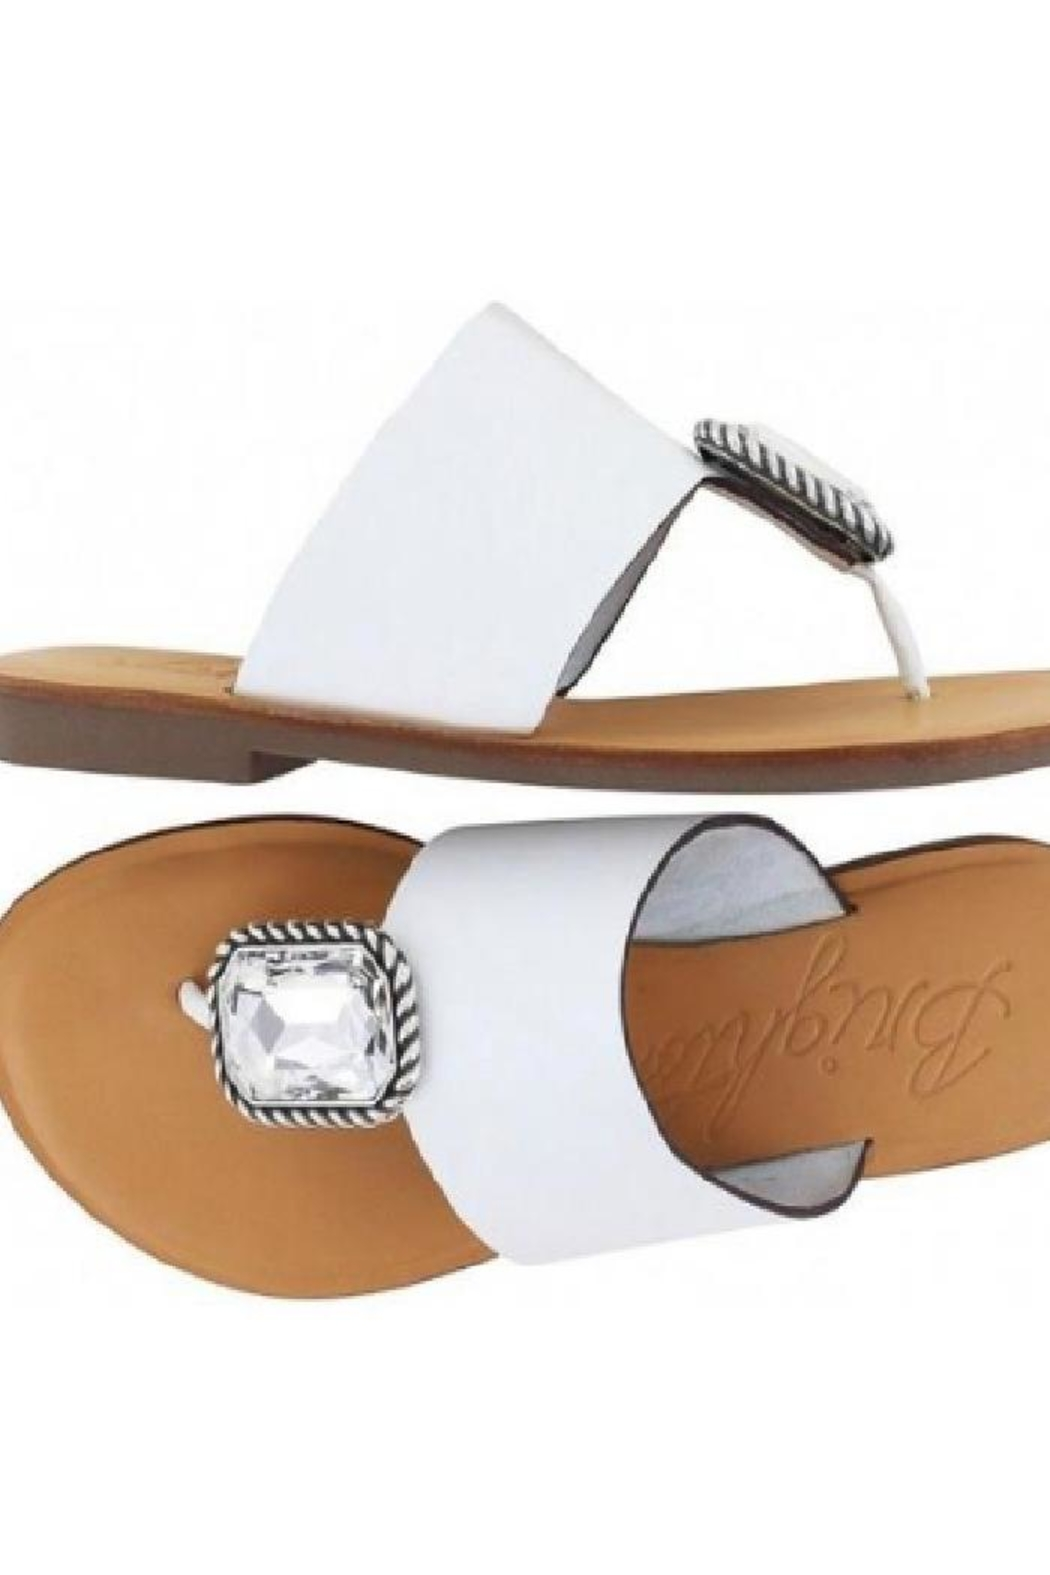 Brighton Allure Thong Sandals - Front Full Image